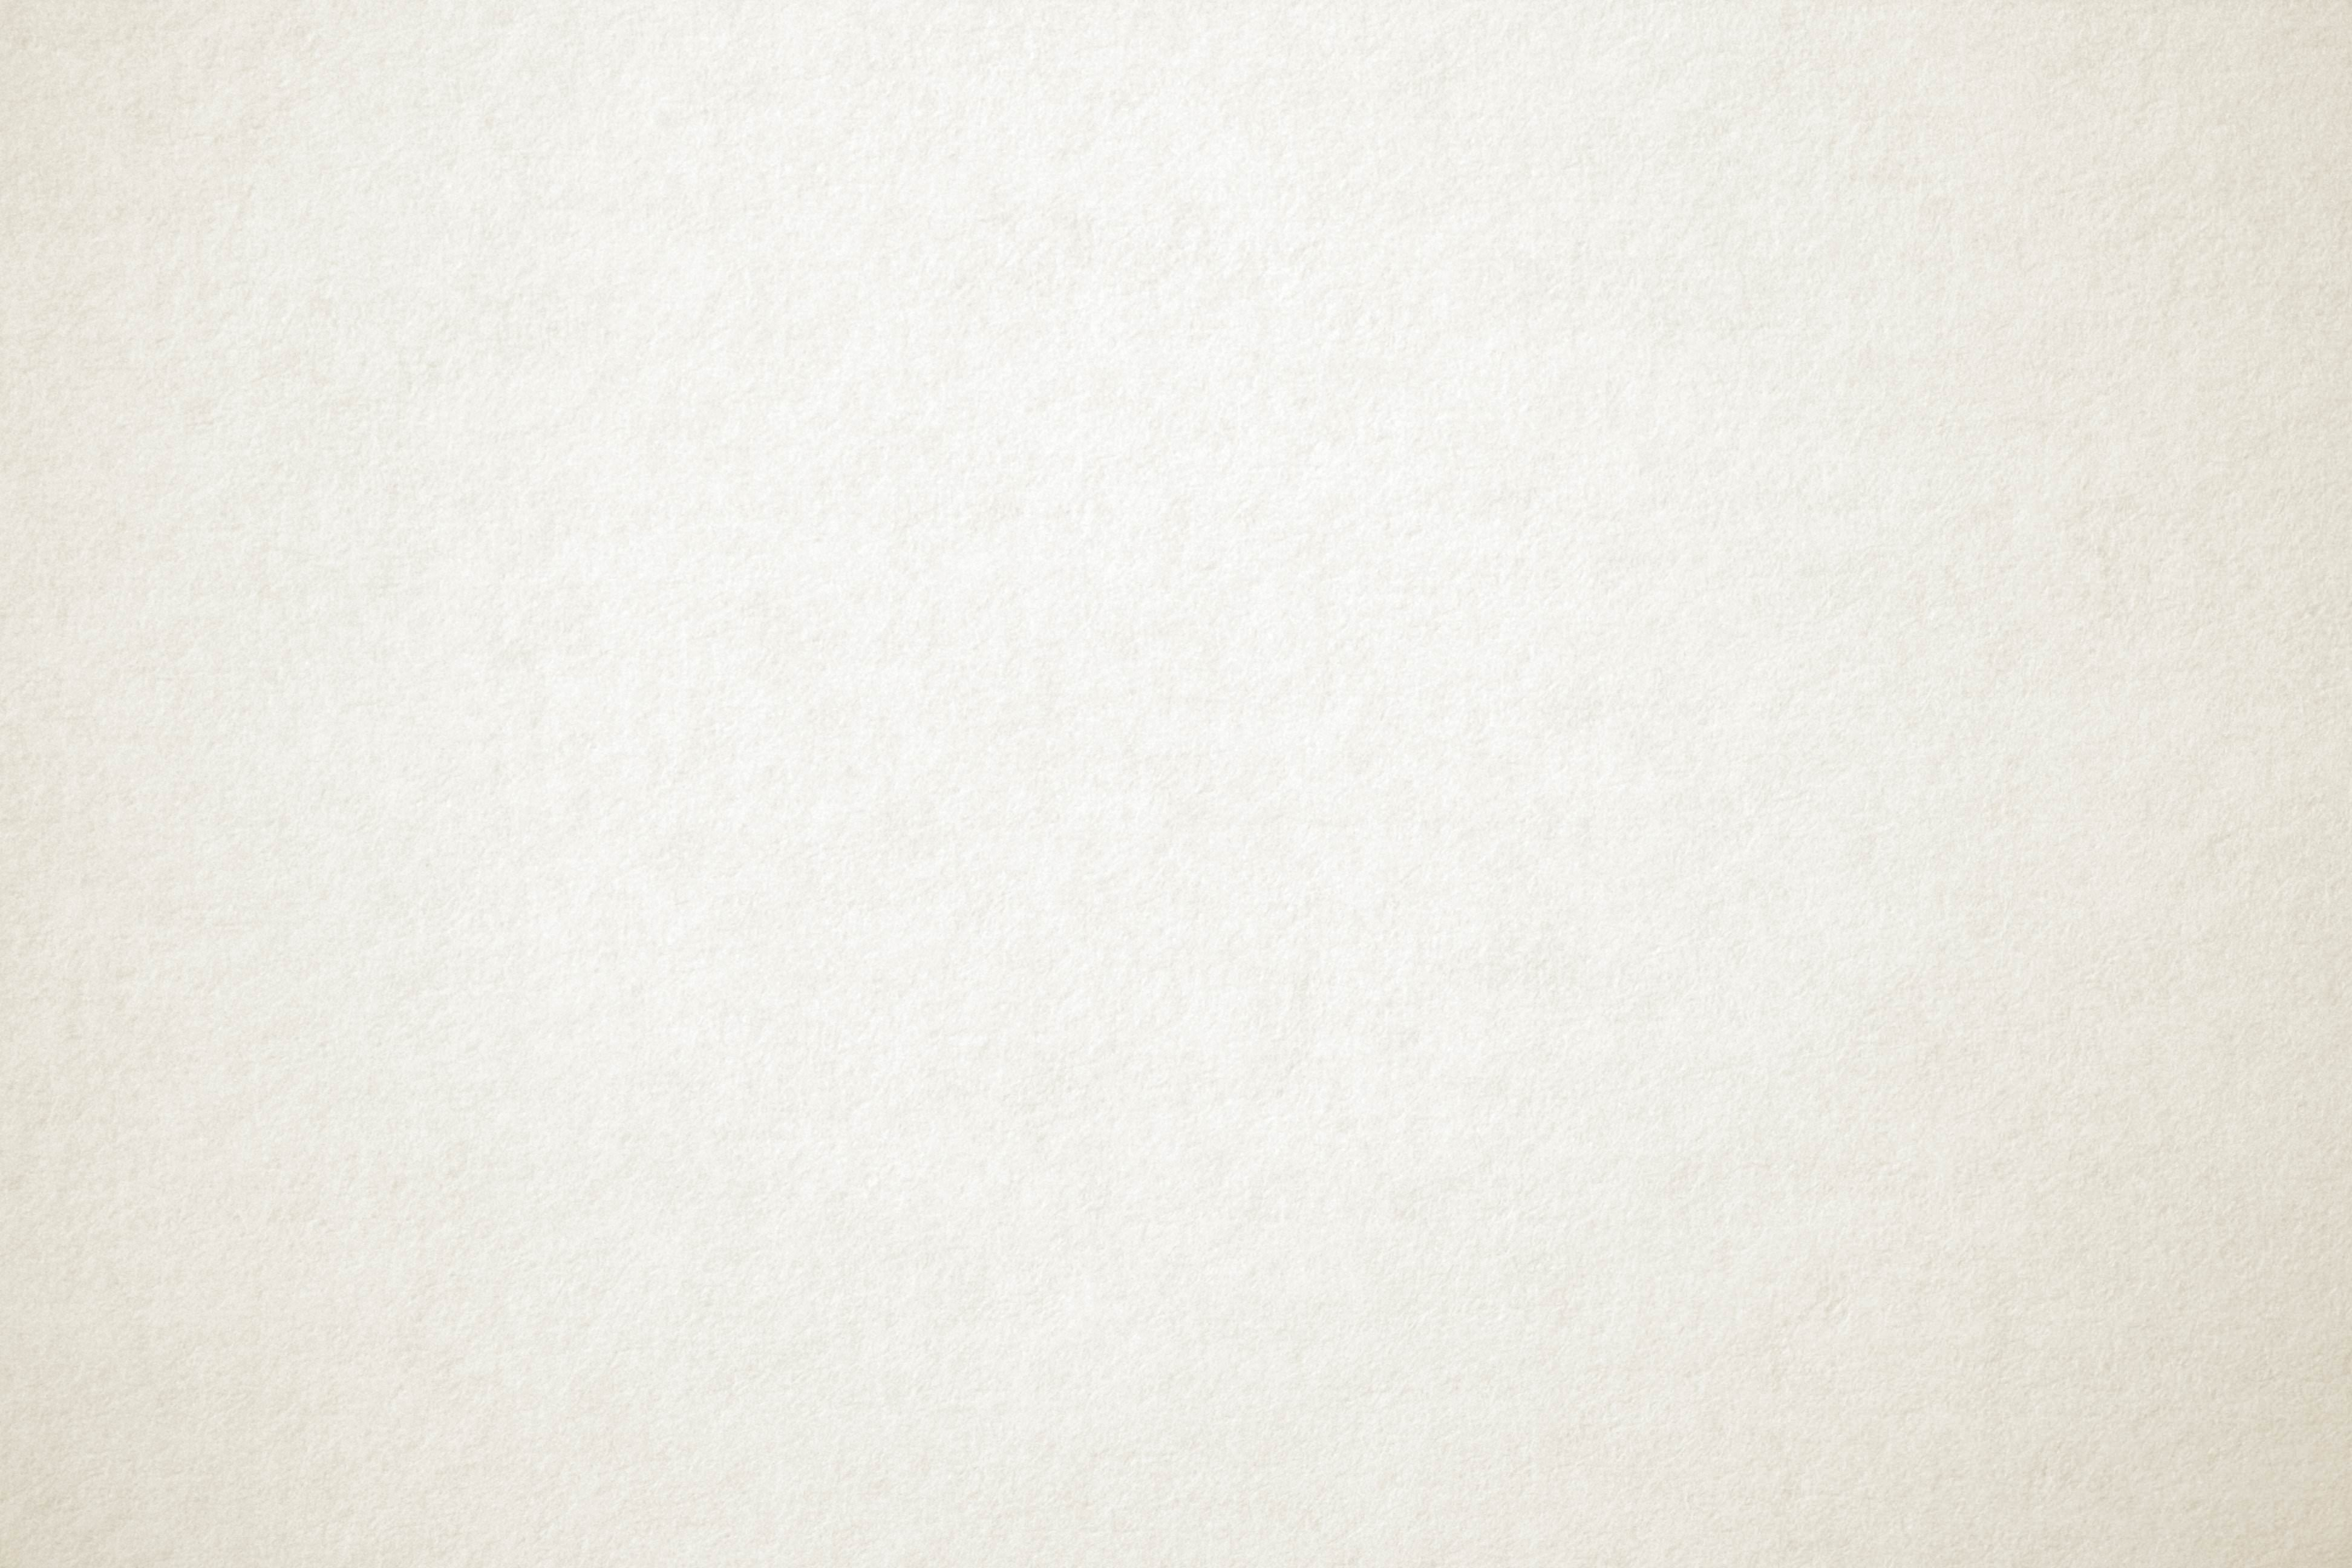 ivory-off-white-paper-texture